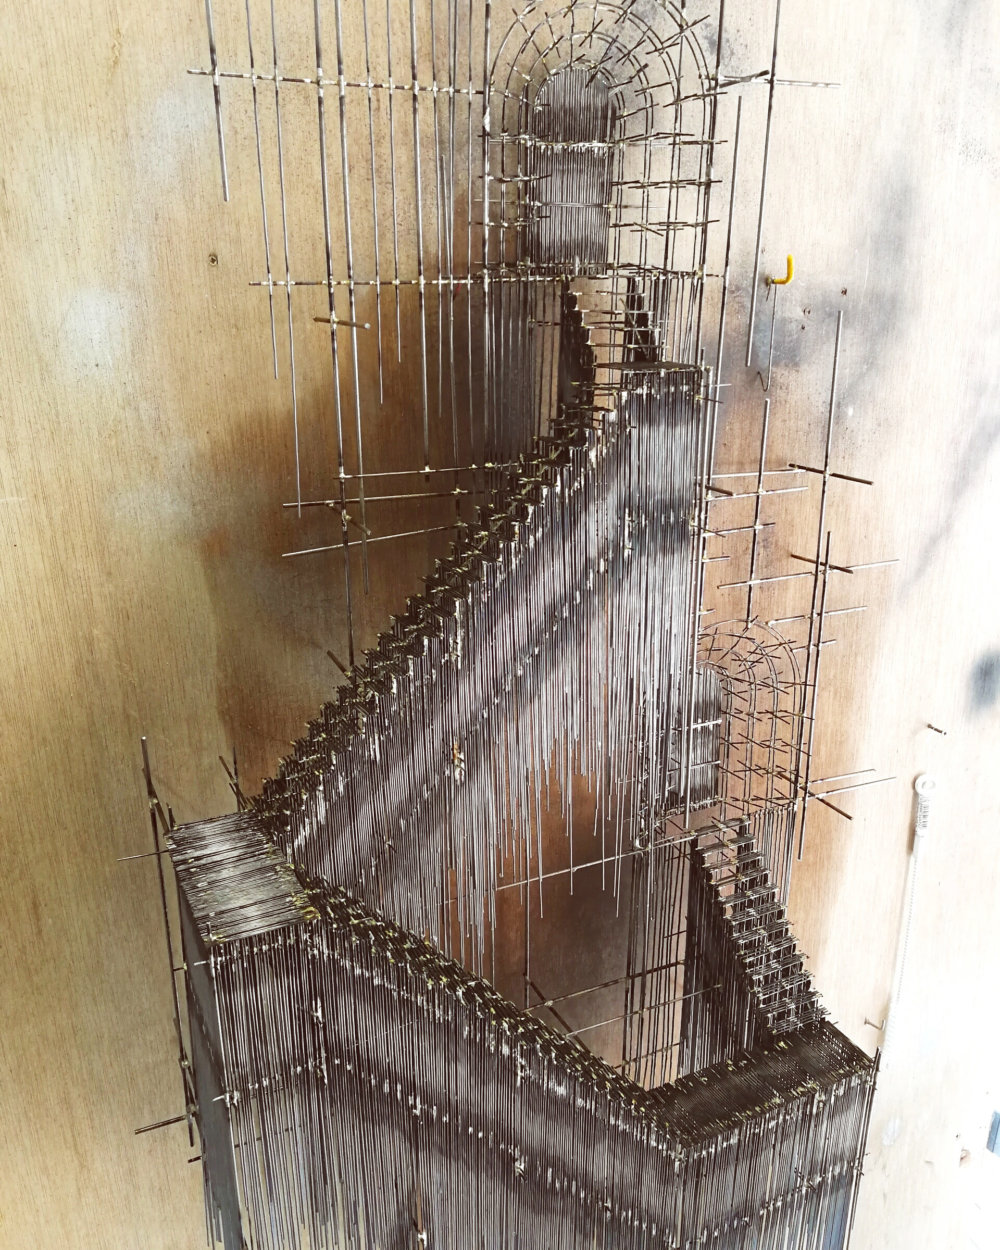 Metal Sketches Architectural Steel Wire Sculptures By David Moreno 3